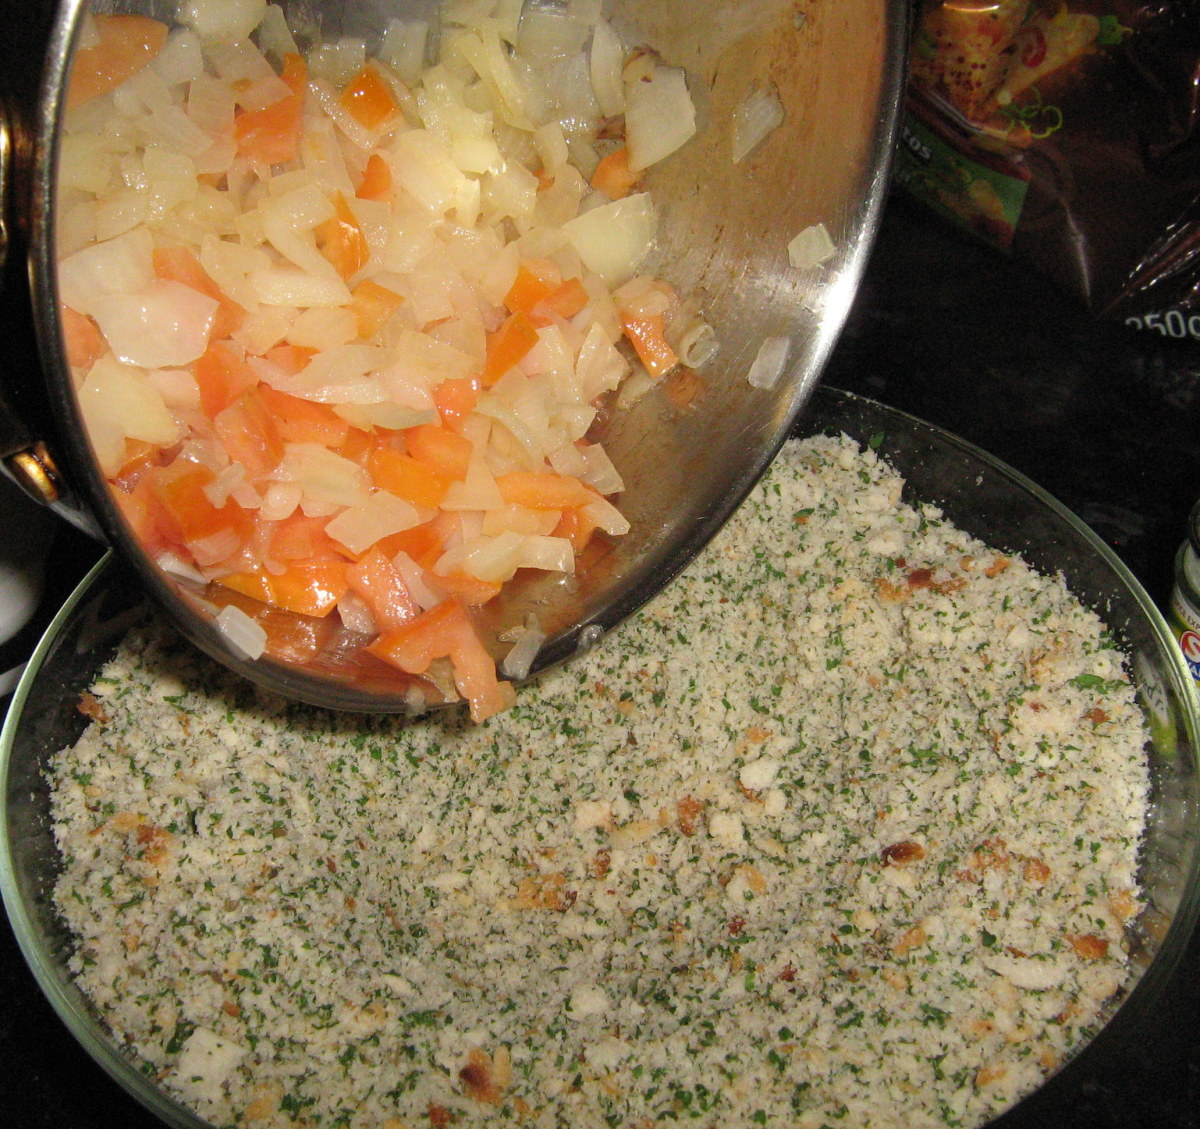 Preparing the stuffing